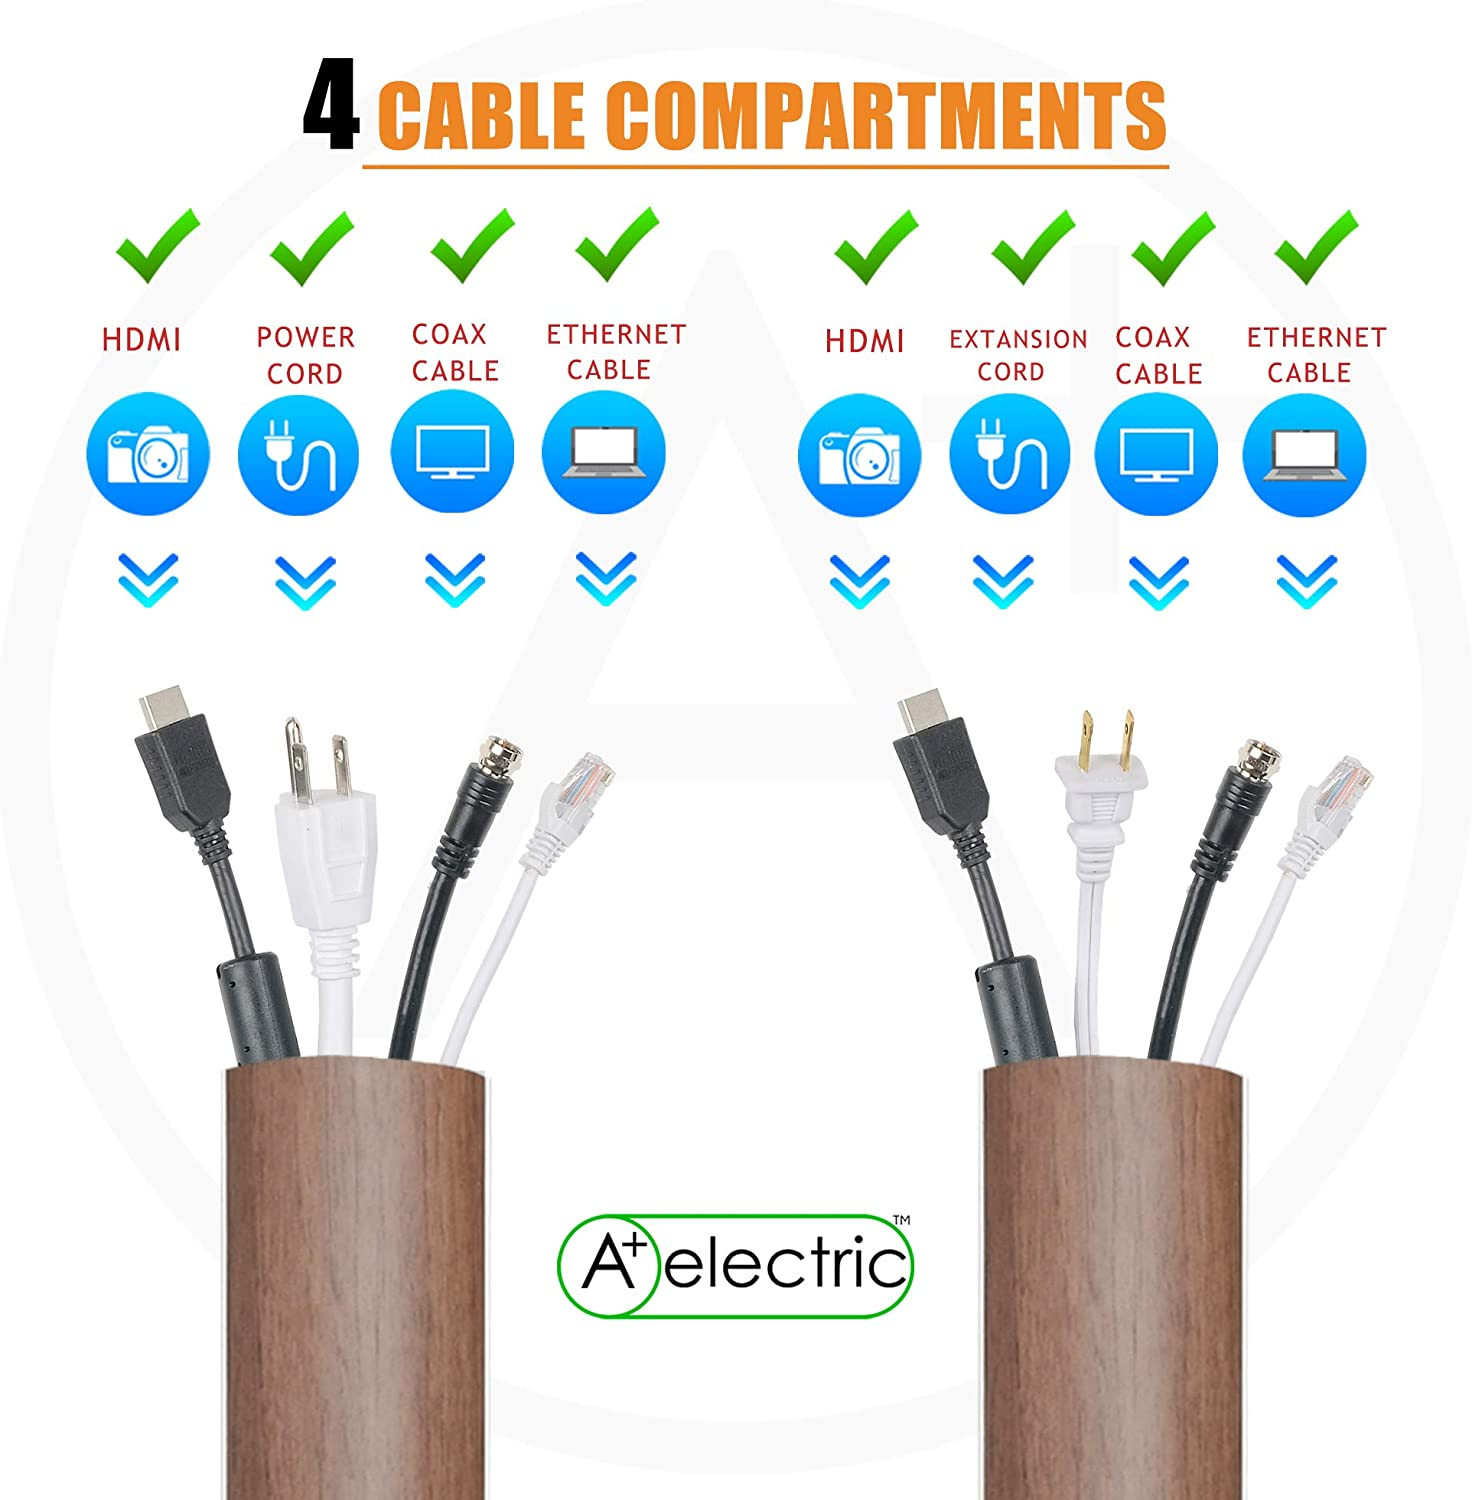 90x20x840mm//3 x0.47 x33 WxHxL Cables Management Kit TL:66 Natural Walnut Rigid Durable Organizer Electric Wire Raceway Self Adhesive Cord Concealer On-Wall//Floor Cable Cover Channel 2 Pieces